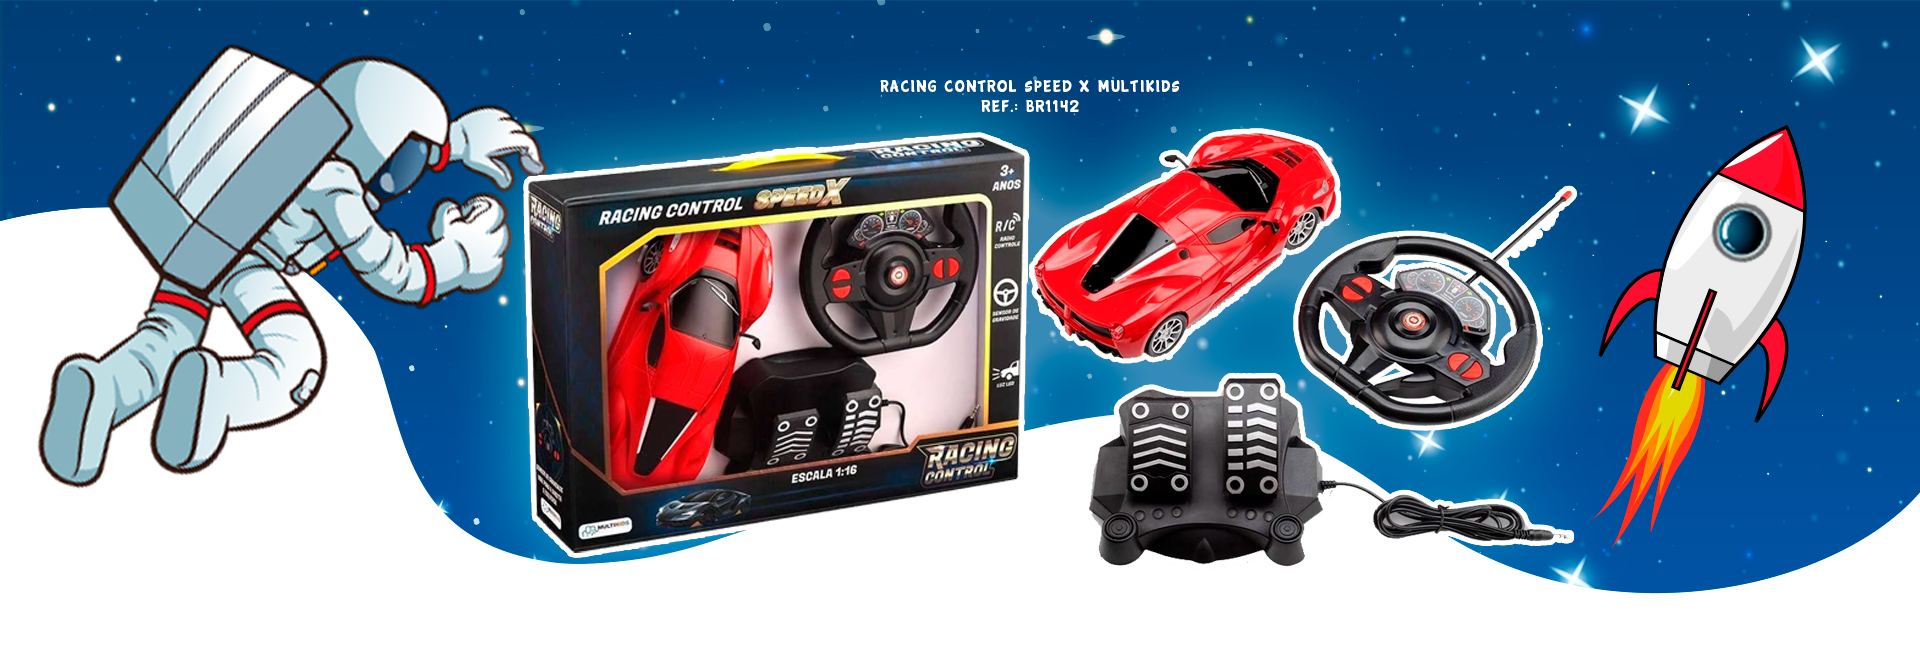 RACING CONTRO MIDNIGHT BR1142